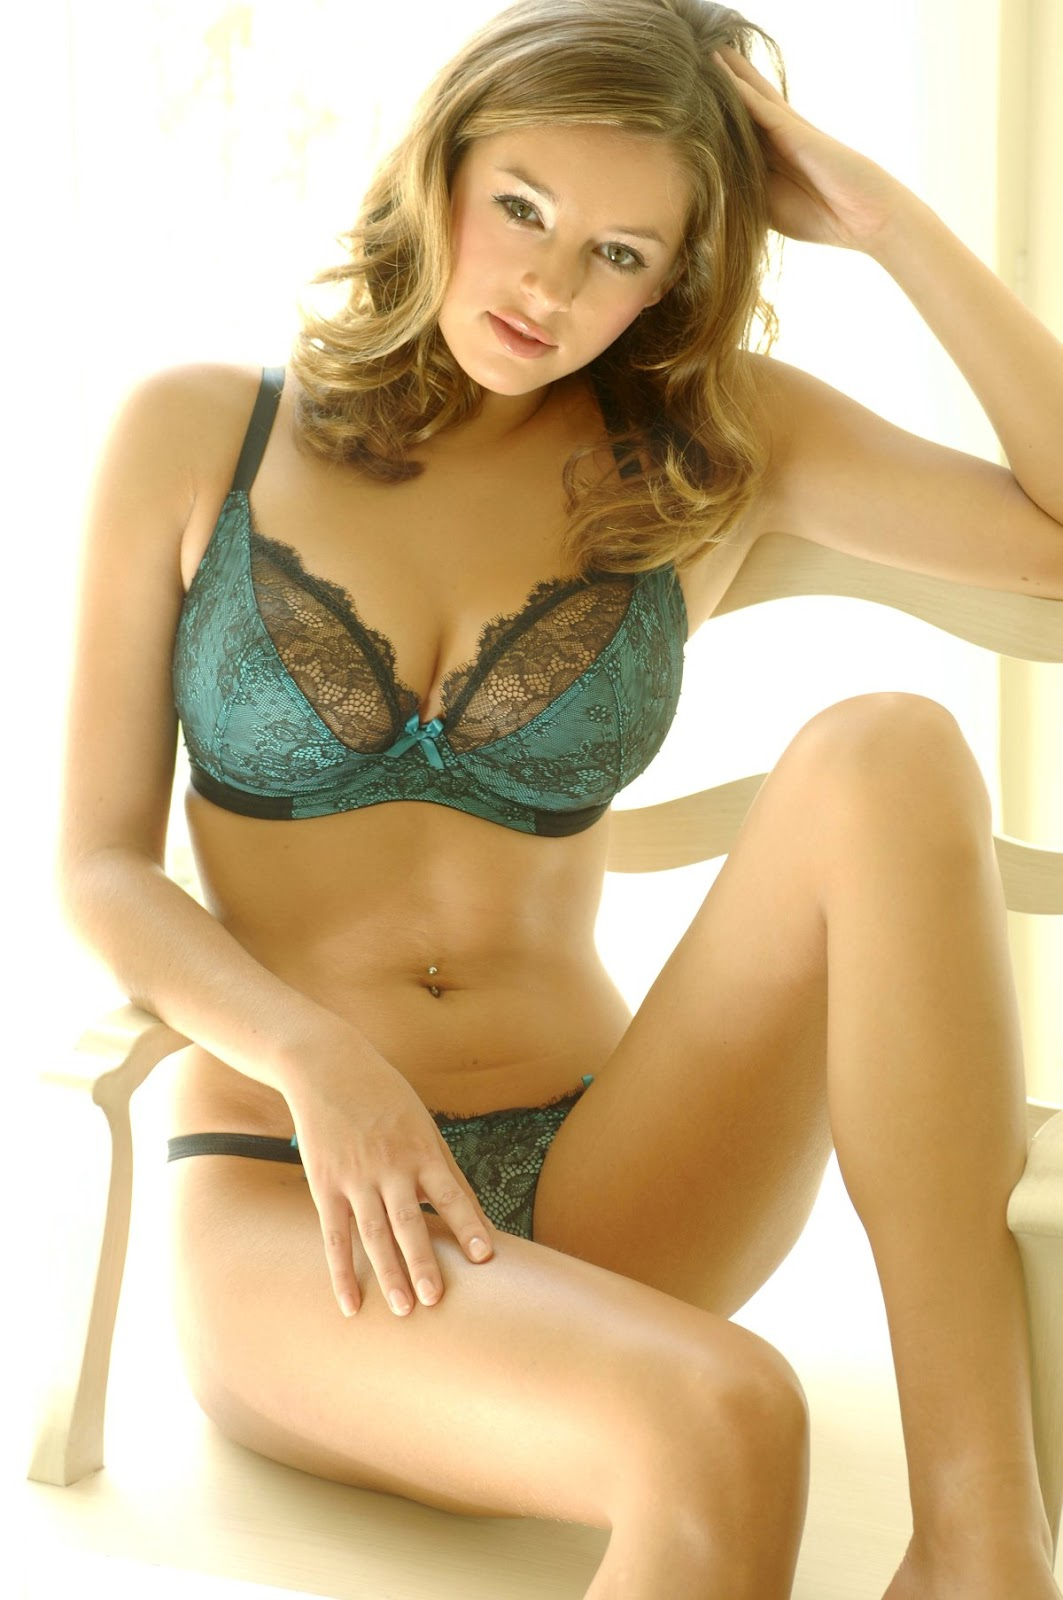 Keeley Hazell - Page 3 Girl / Model In Super Hot Bikini Pertaining To Page 3 Babes